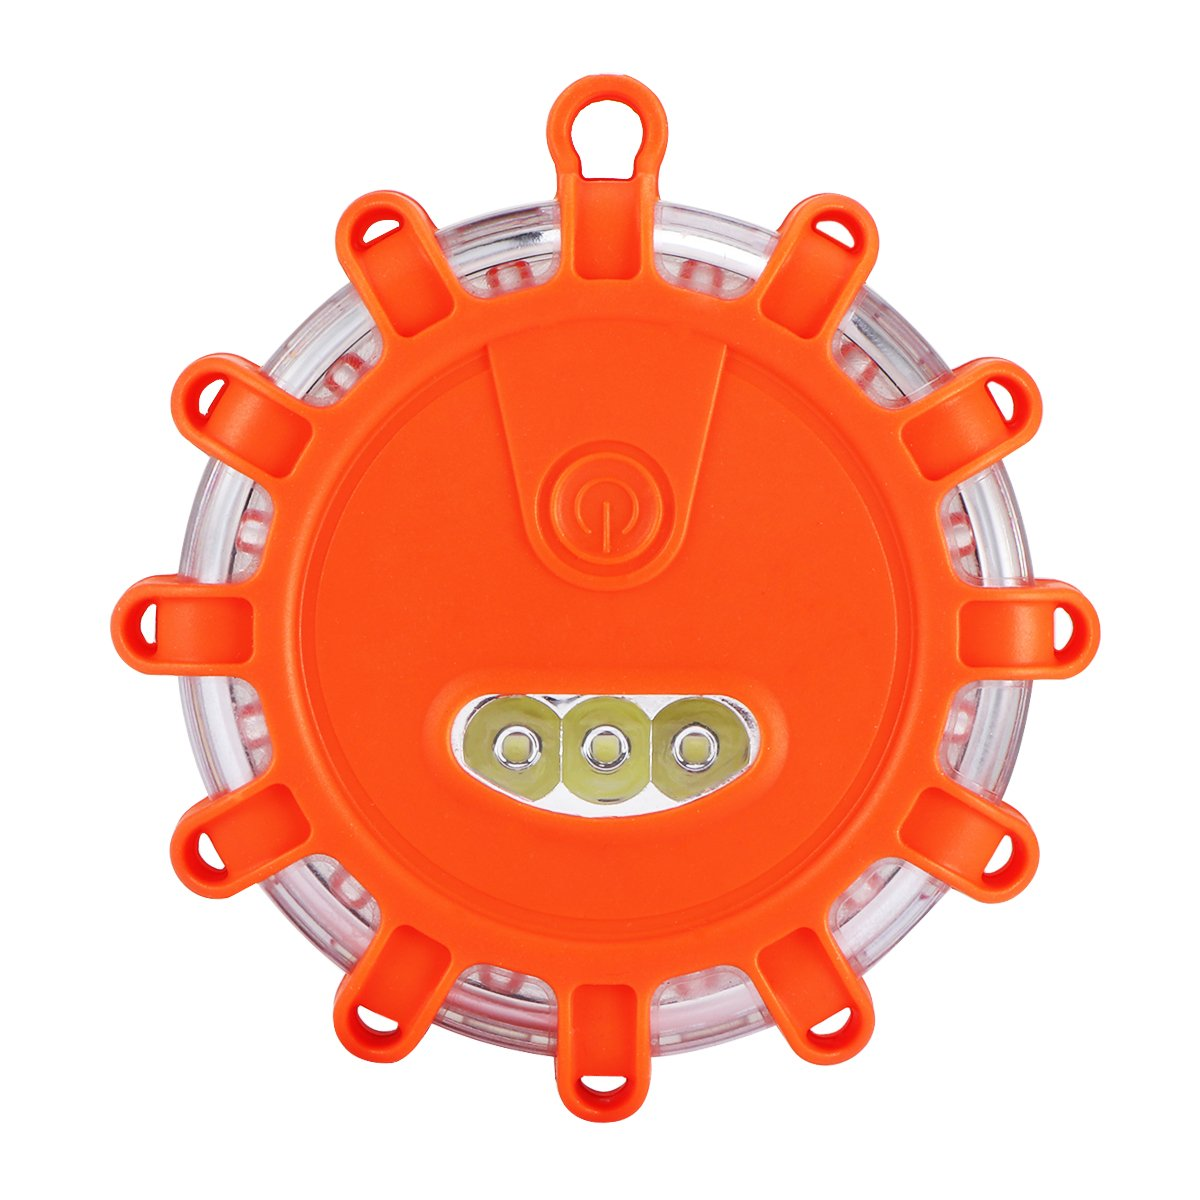 Sunsbell LED Road Light Emergency Roadside Safety Beacons Flashing Warning Light with Magnetic Base for Car Truck Boat